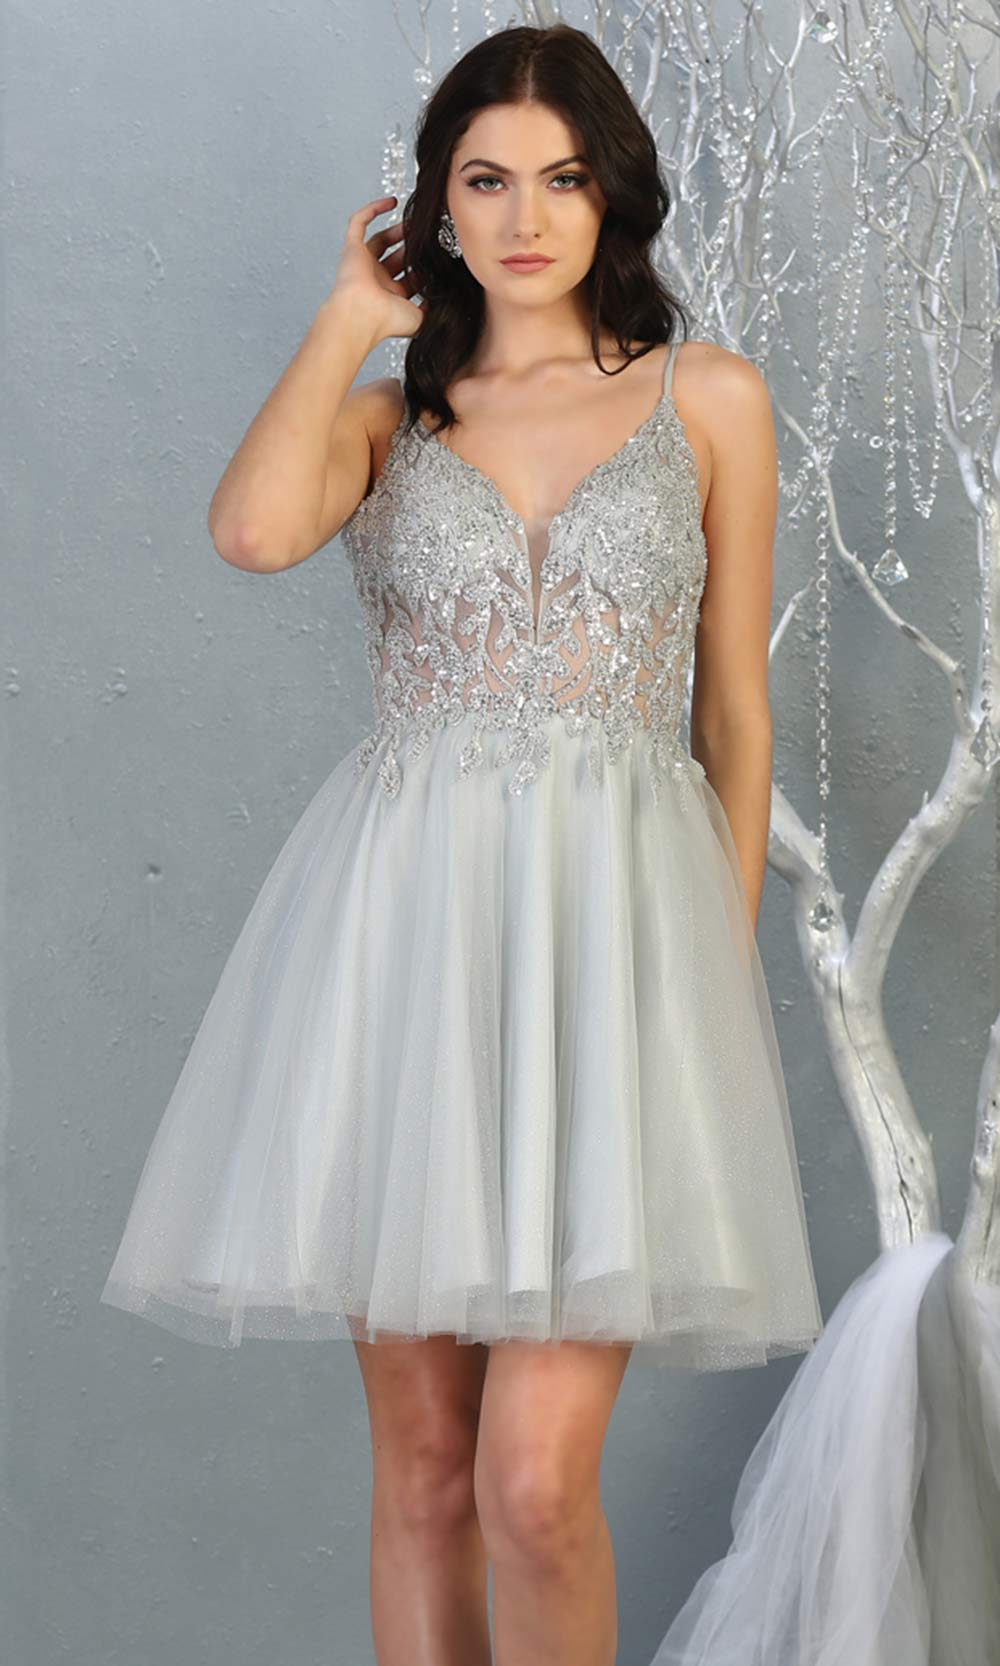 Mayqueen MQ1813 short silver sequin flowy vneck grade 8 graduation dress w/ straps & puffy skirt. Light grey party dress is perfect for prom, graduation, grade 8 grad, confirmation dress, bat mitzvah dress, damas. Plus sizes avail for grad dress.jpg